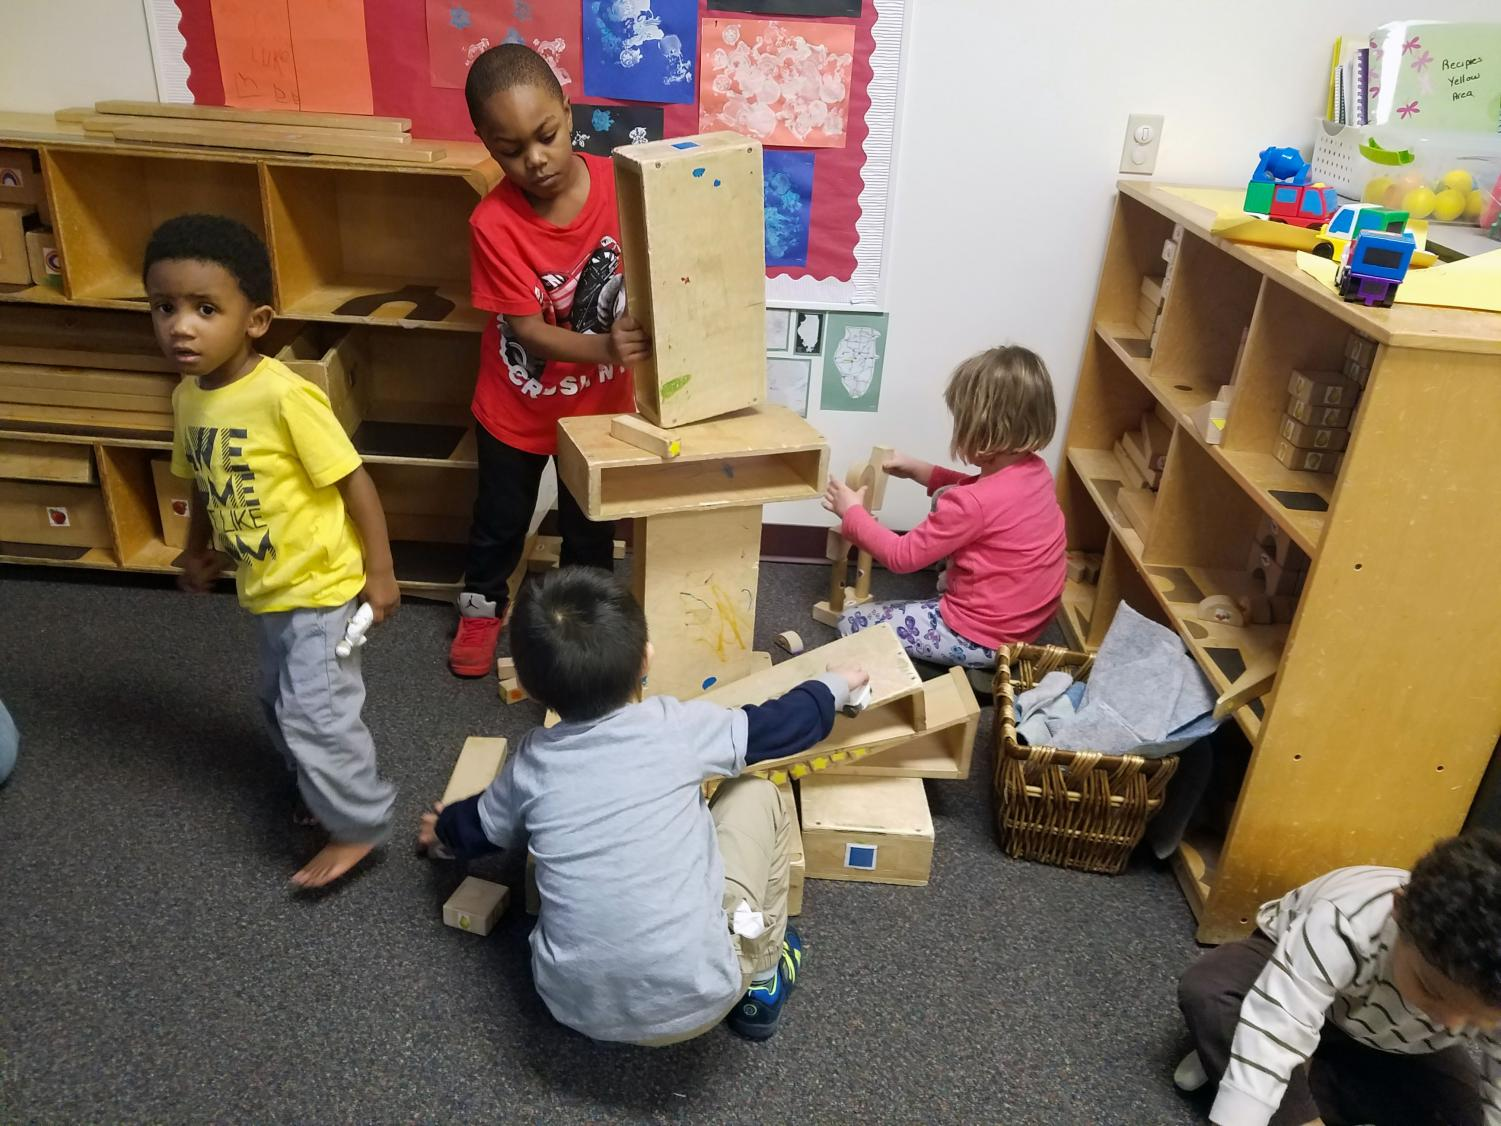 Children build with blocks together in the LLCC Child Development Center.